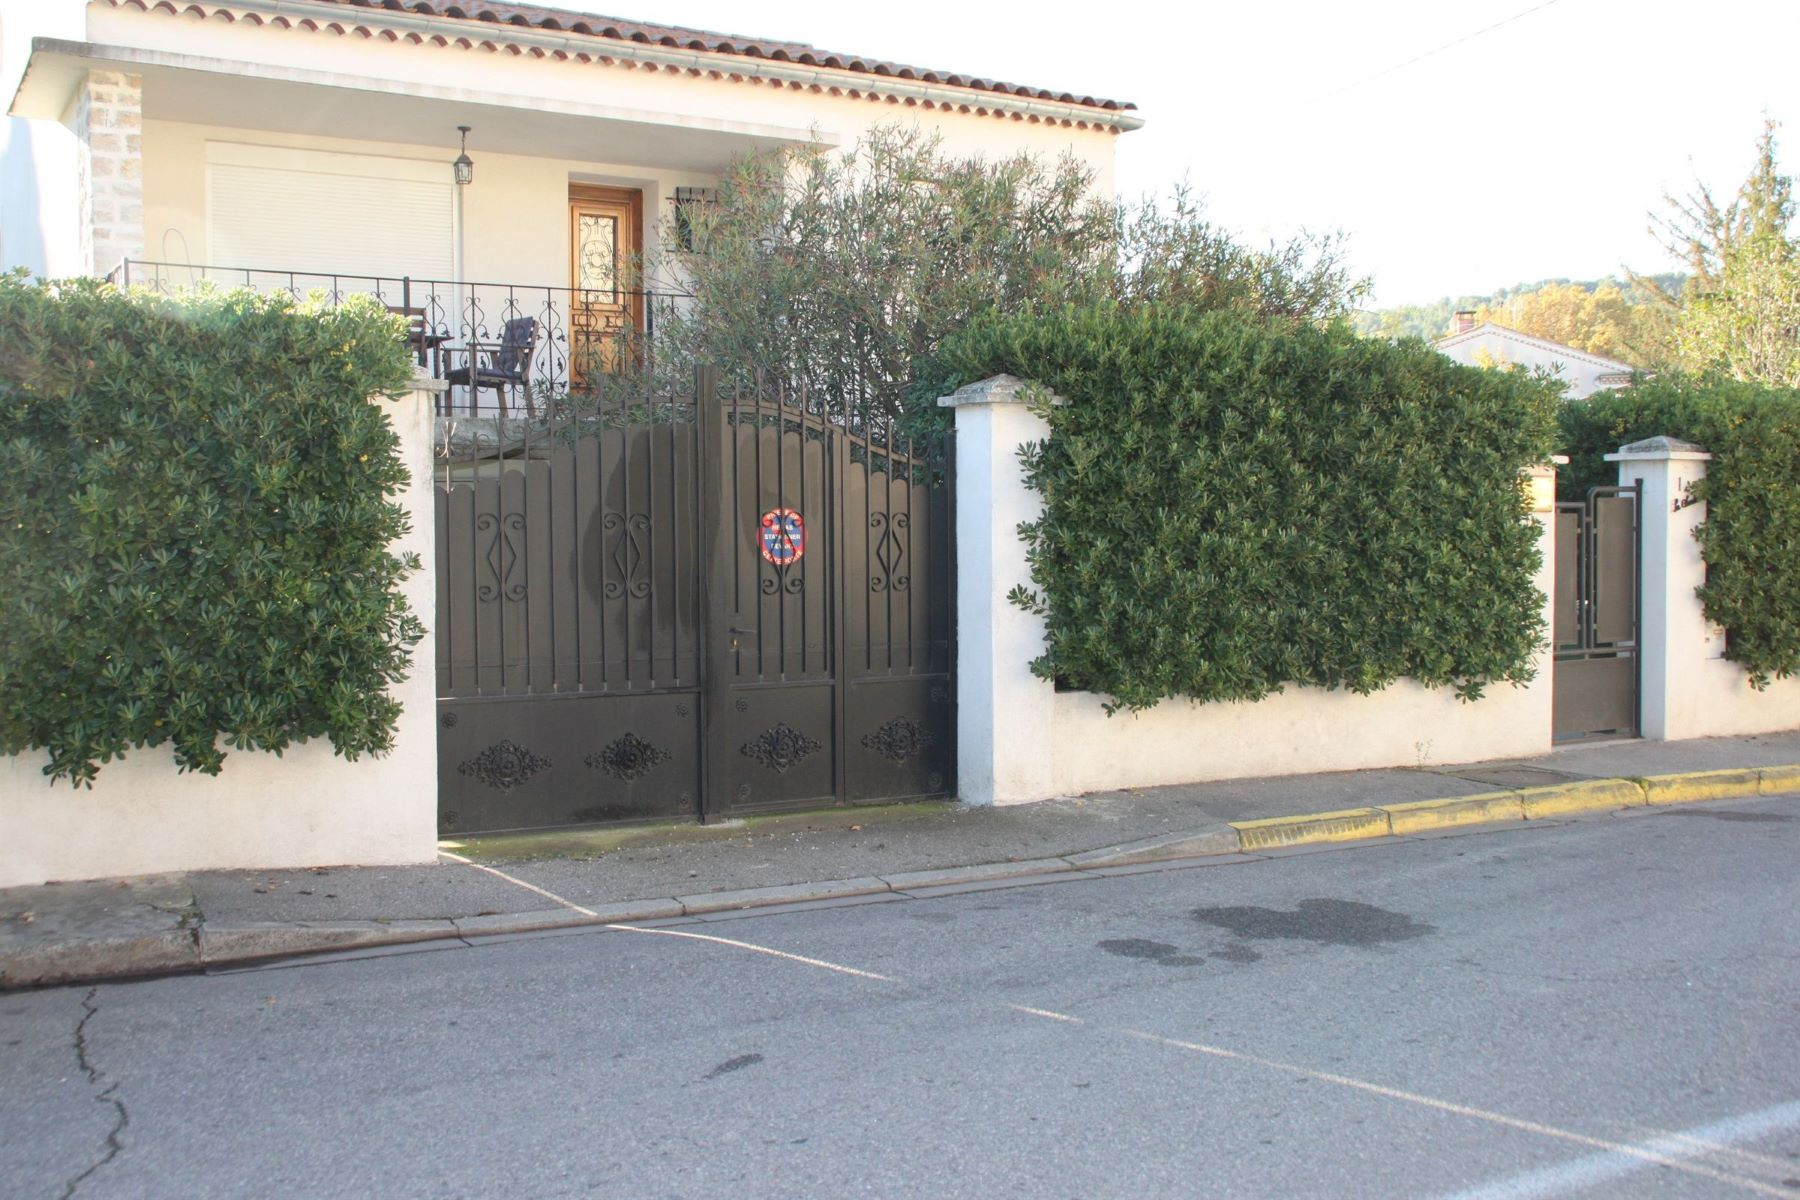 Single Family Home for Sale at AIX EN PROVENCE - PONT DE L'ARC Aix-En-Provence, Provence-Alpes-Cote D'Azur, 13090 France